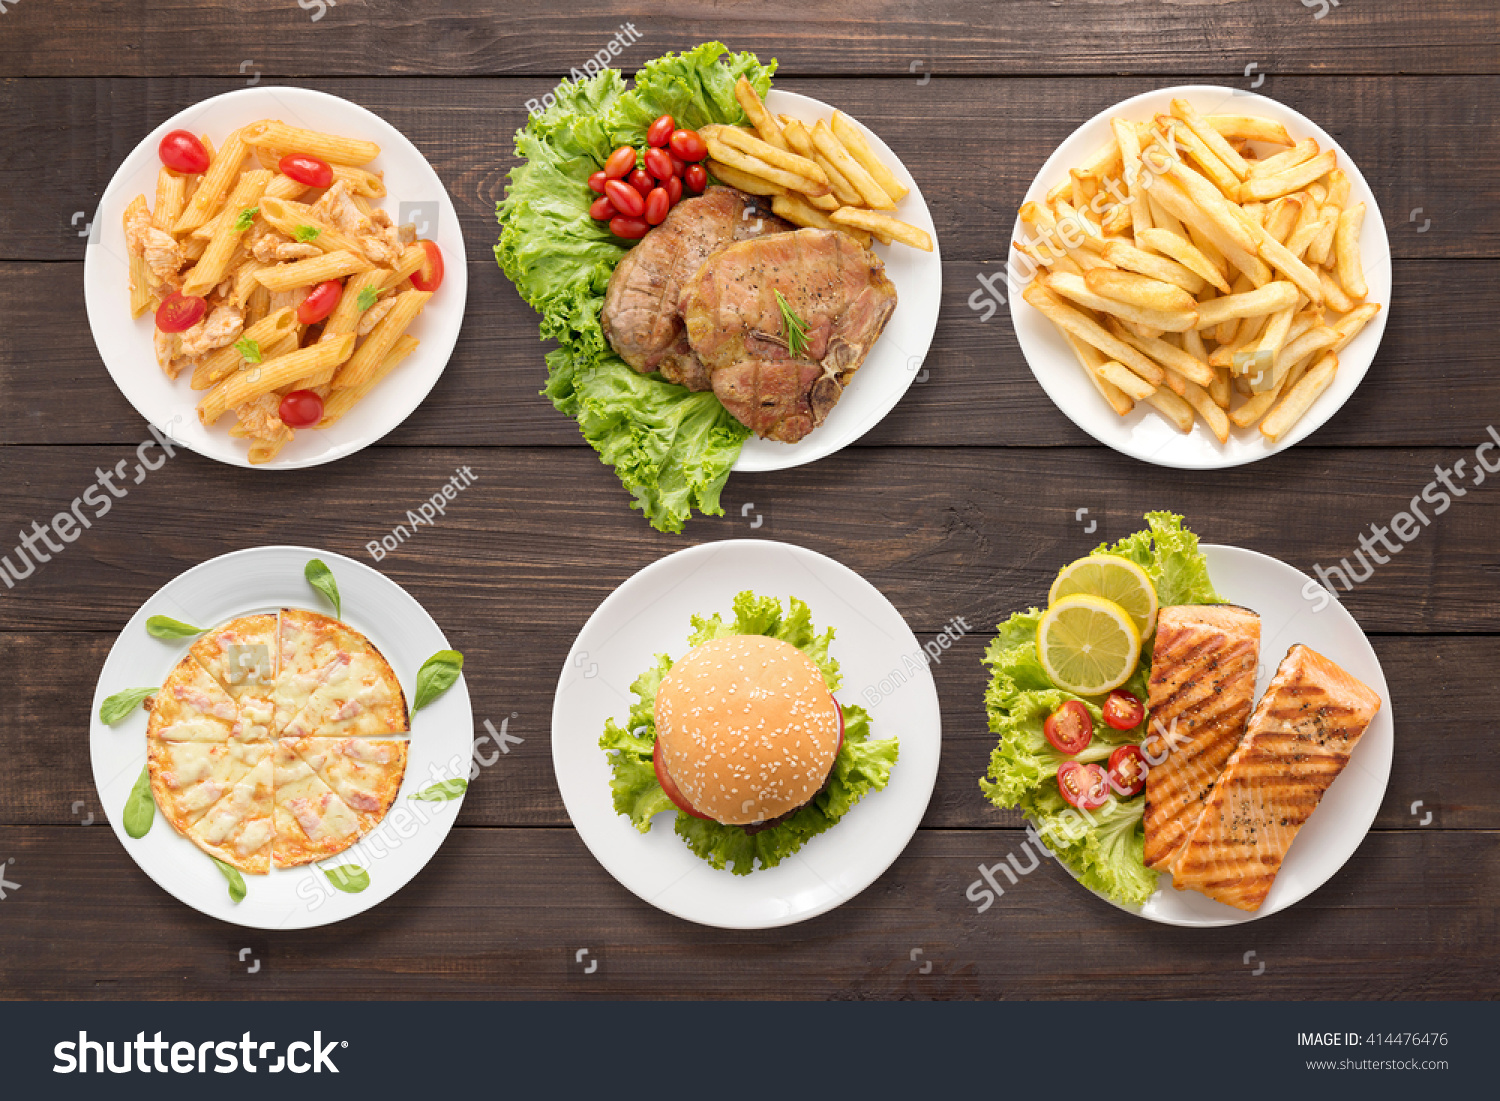 Food set pasta bbq meat french fries pizza burger and bbq salmon on the wooden background